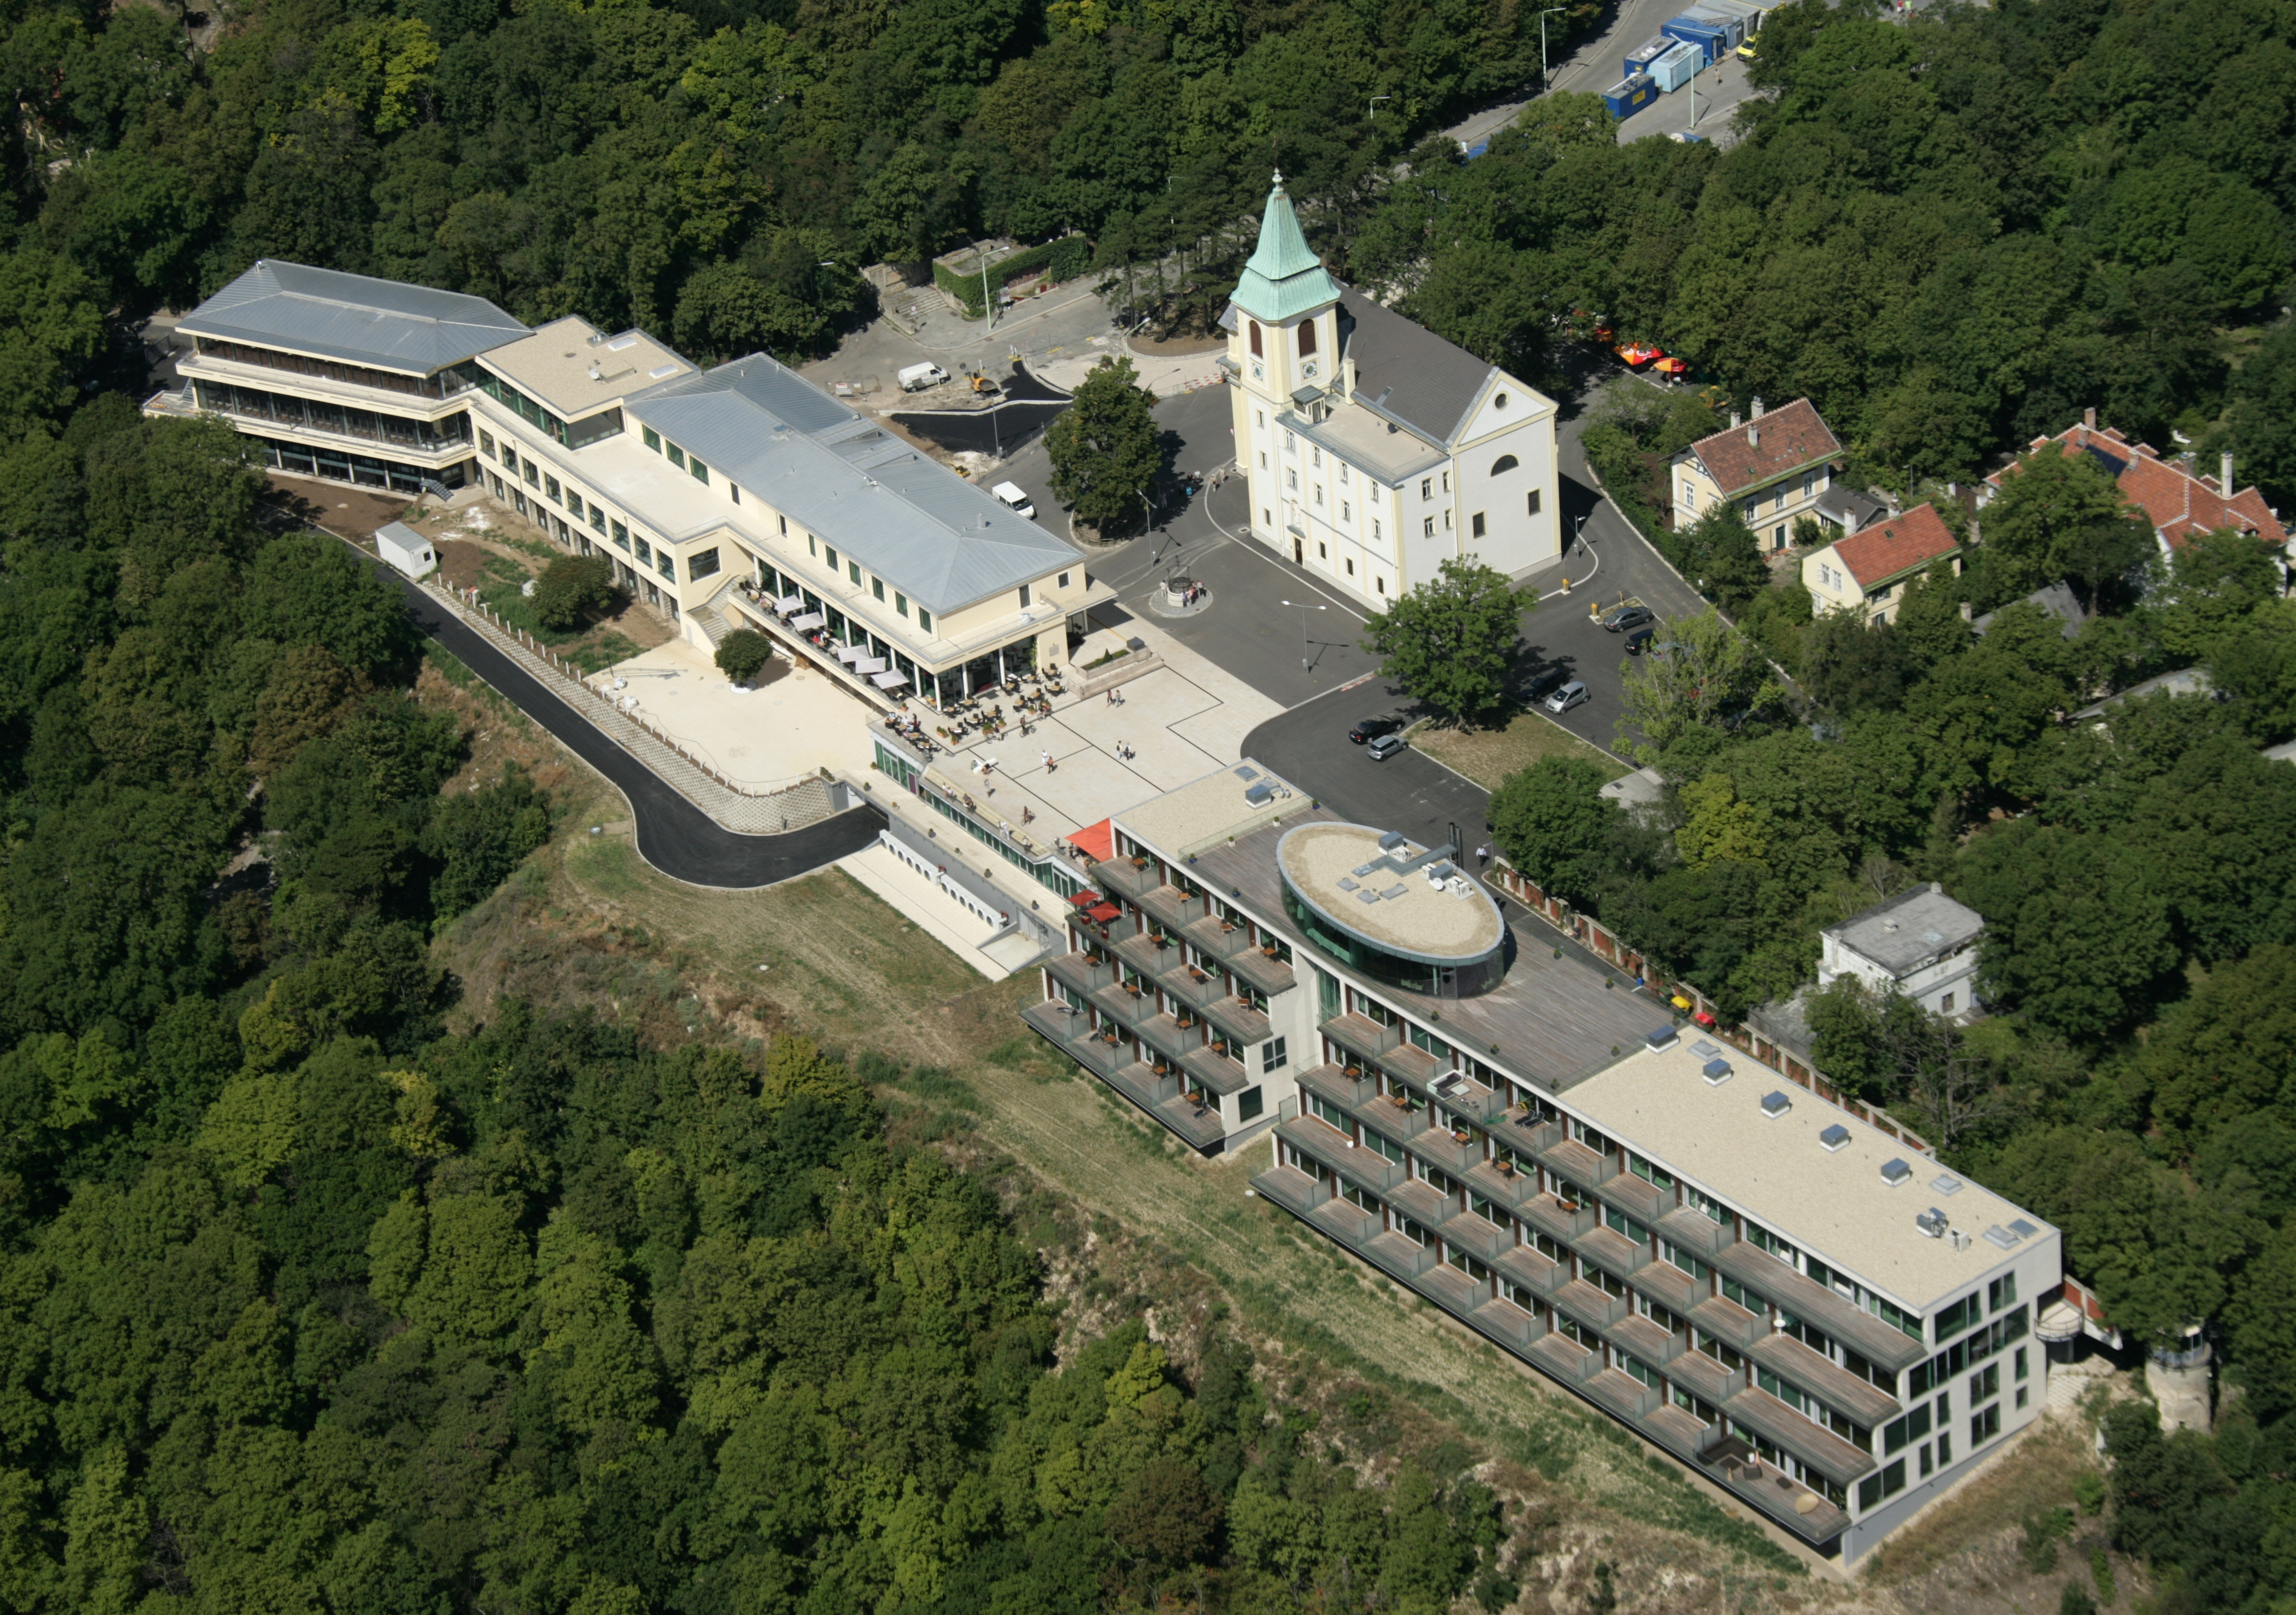 Hotel Kahlenberg - Building construction